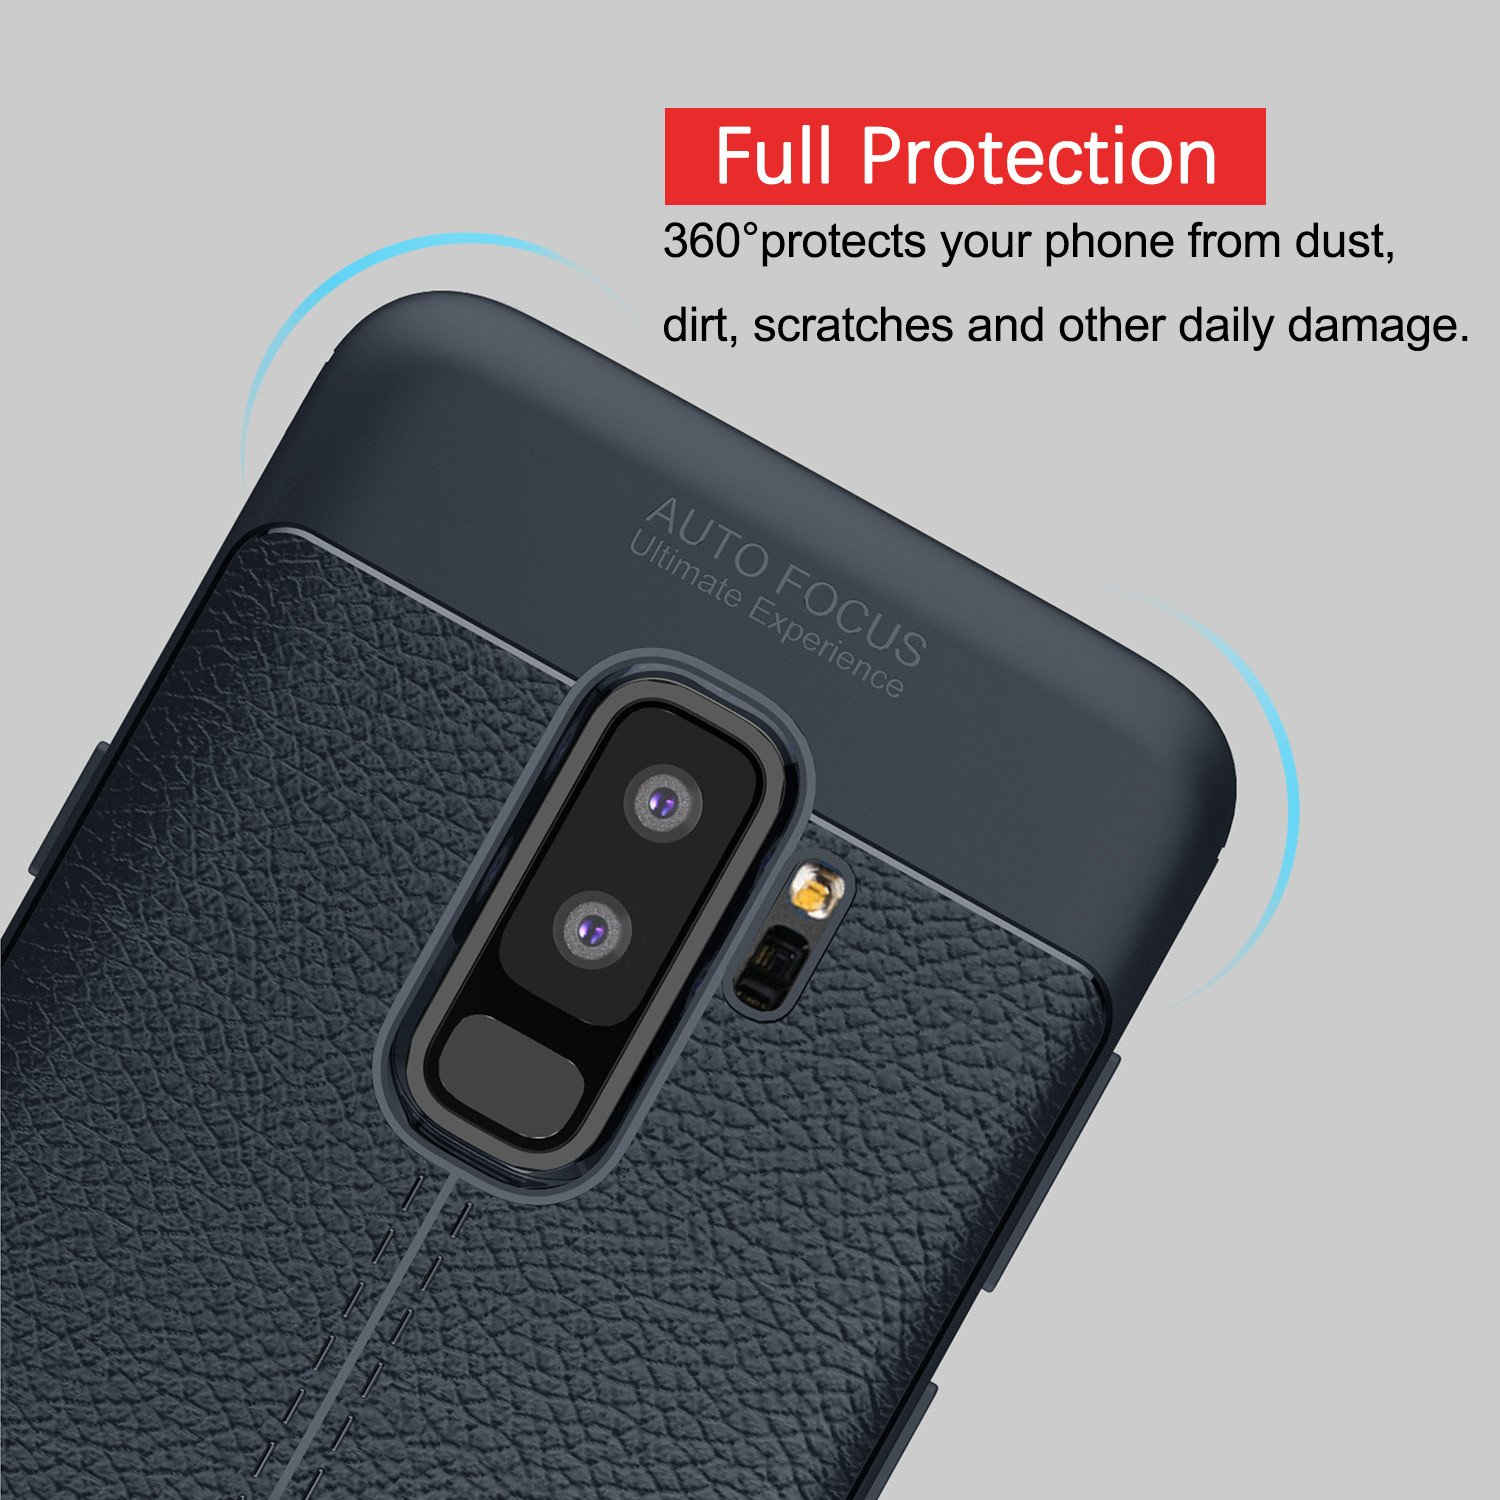 Samsung Galaxy S9 Soft Case, PRODELI Ultra Slim Flexible Leather TPU Protective Case Cover Shockproof,Anti-Scratch,Easy Grip,Full Protective Case for Galaxy S9 (Navy)